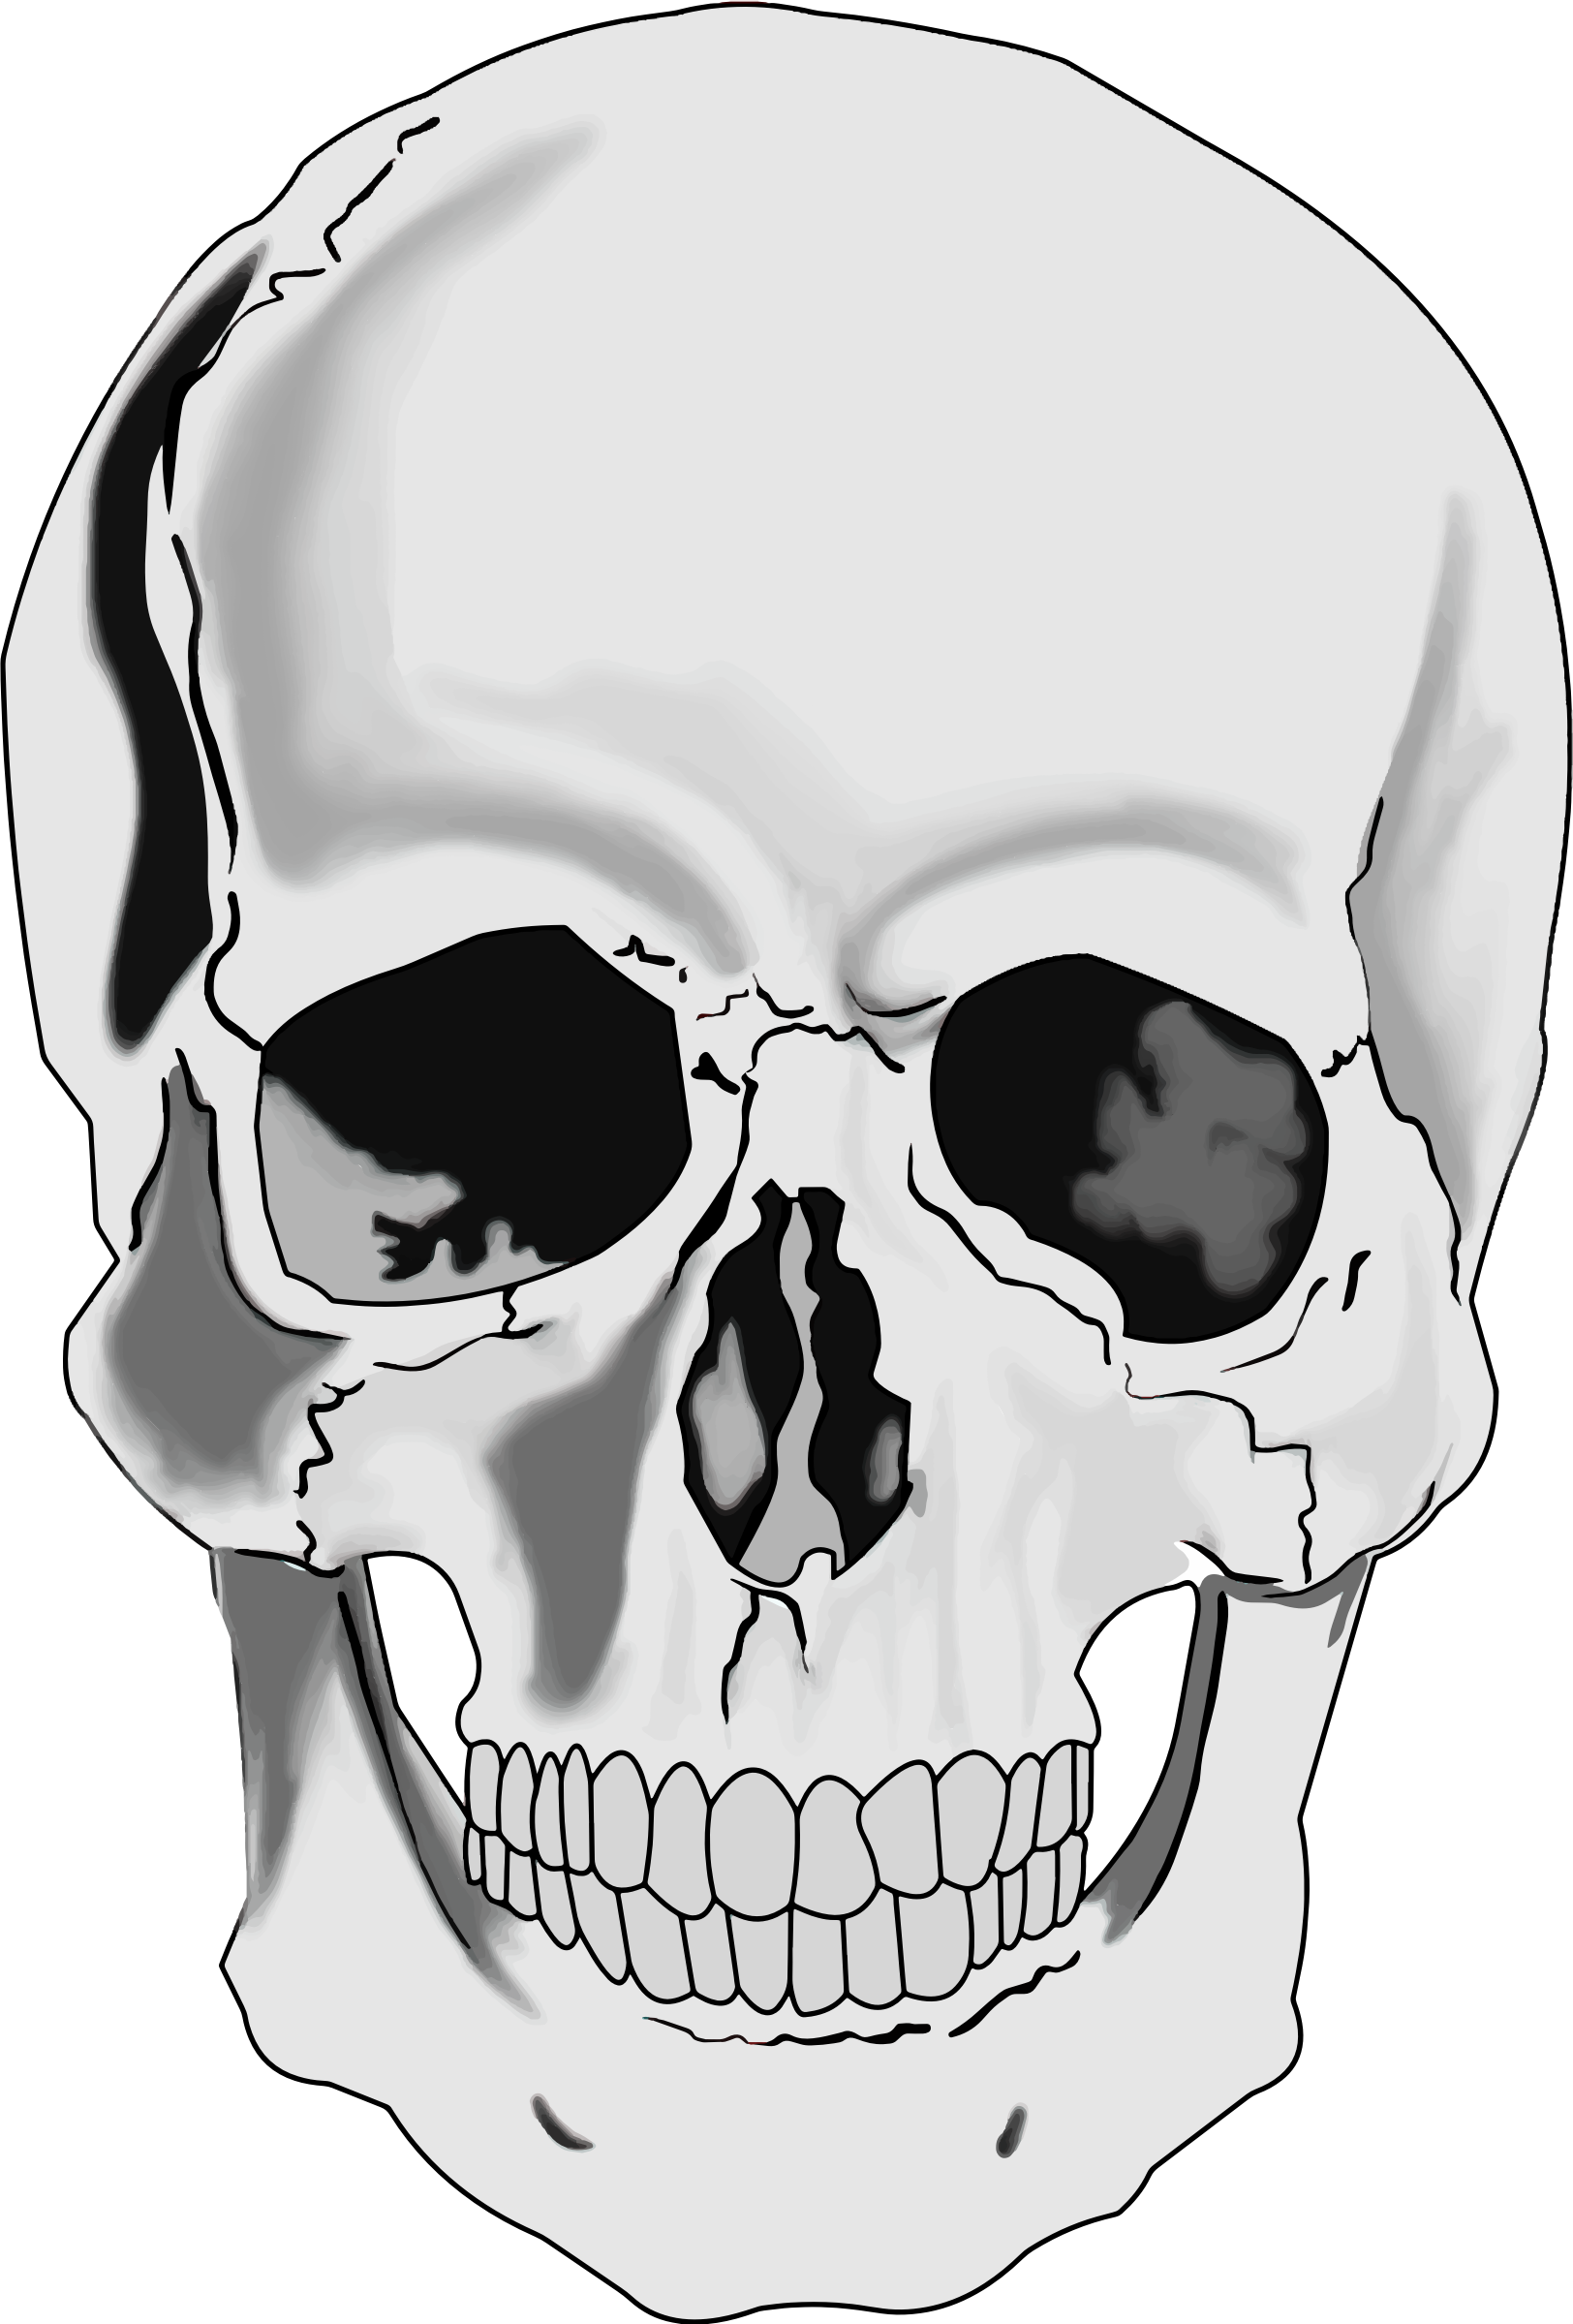 Skull clipart images 3 » Clipart Station.